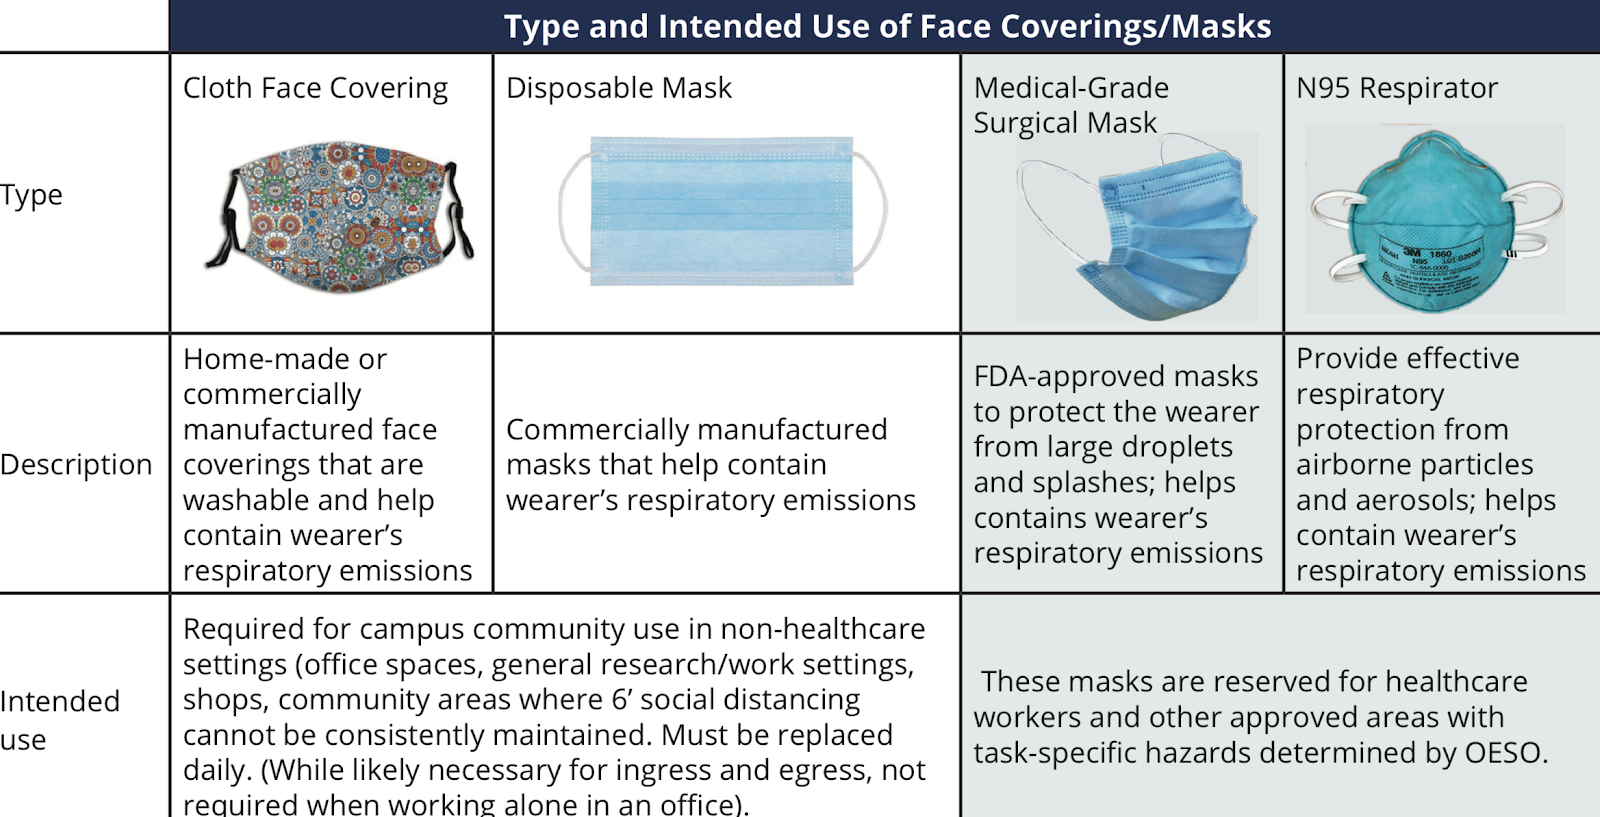 Types and Intended Use of Face Covering Masks